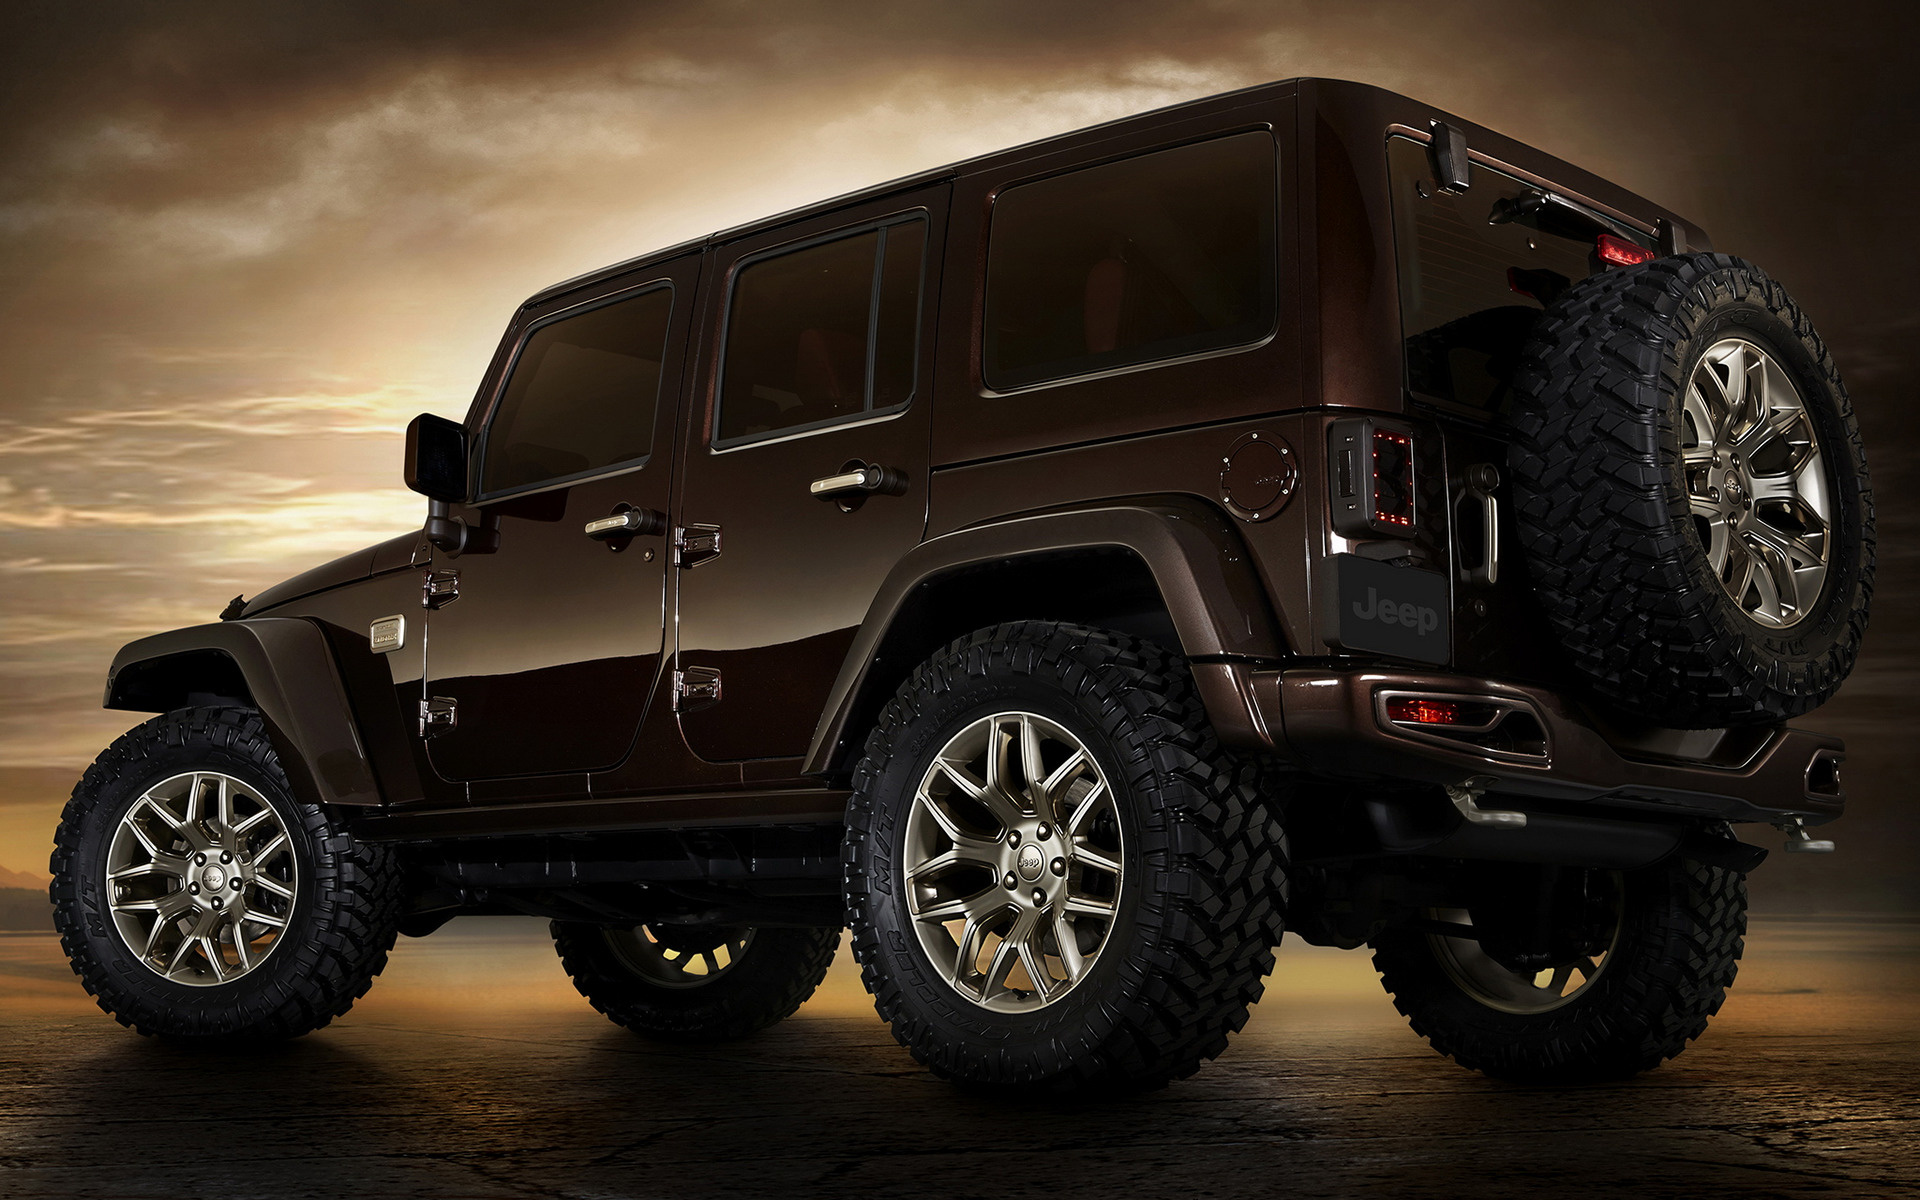 Jeep Wrangler Sundancer Concept (2014) Wallpapers and HD ...